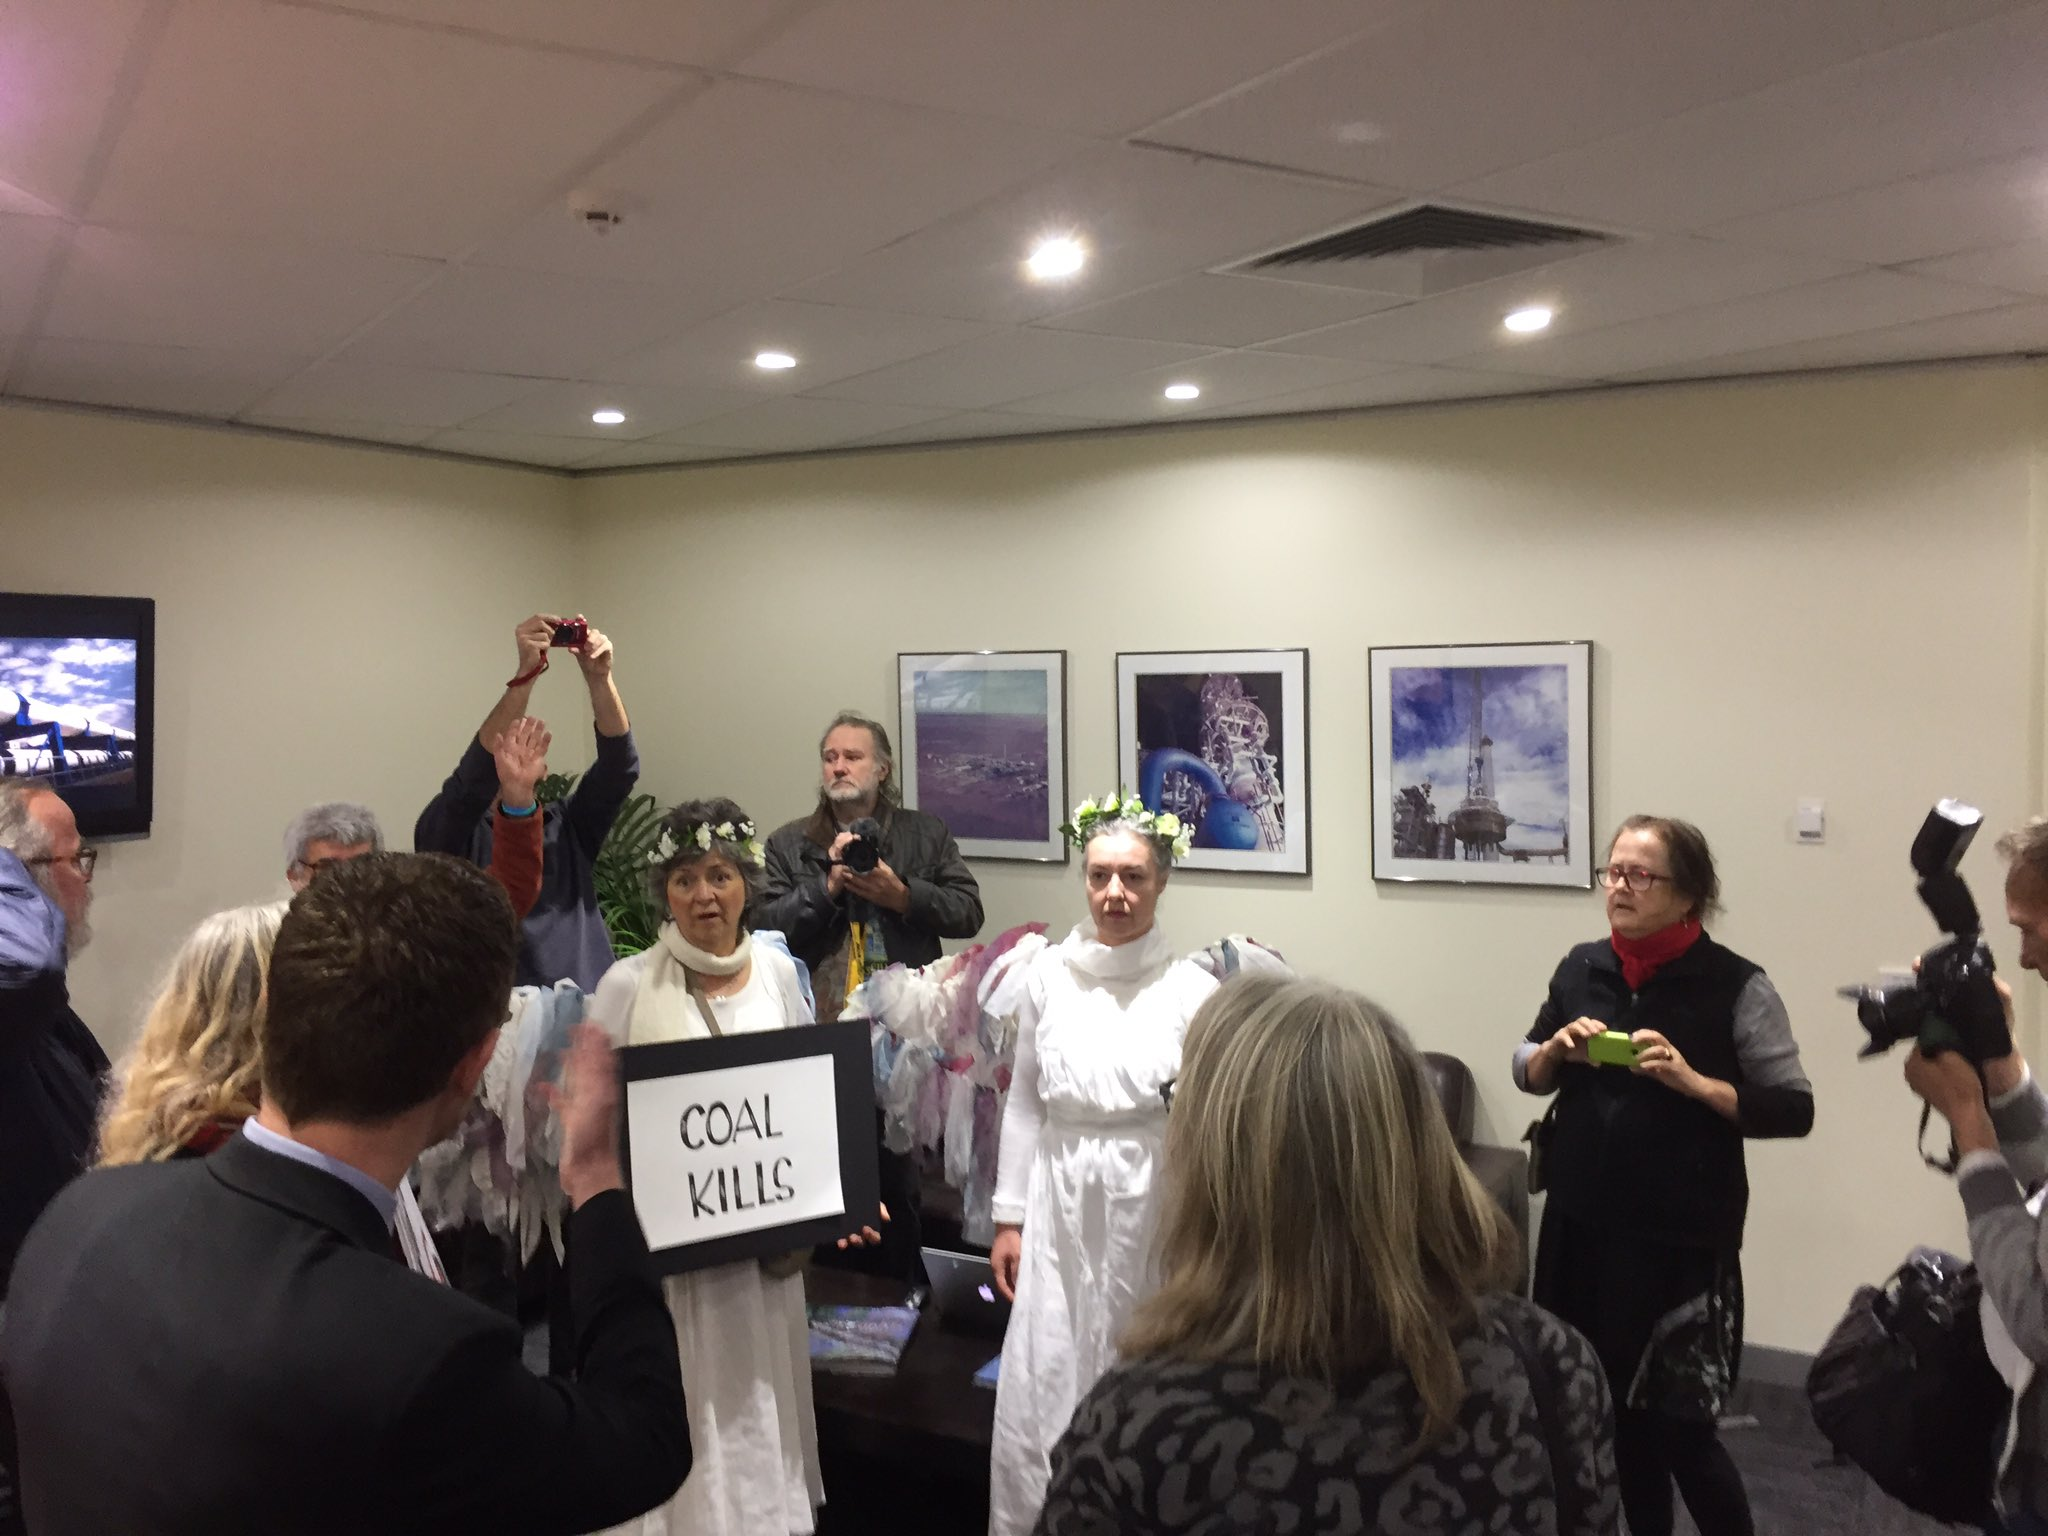 Downer want us out. We want Downer to not get in bed with Adani #StopAdani @stopadani @AYCC https://t.co/esgl5b7qnB